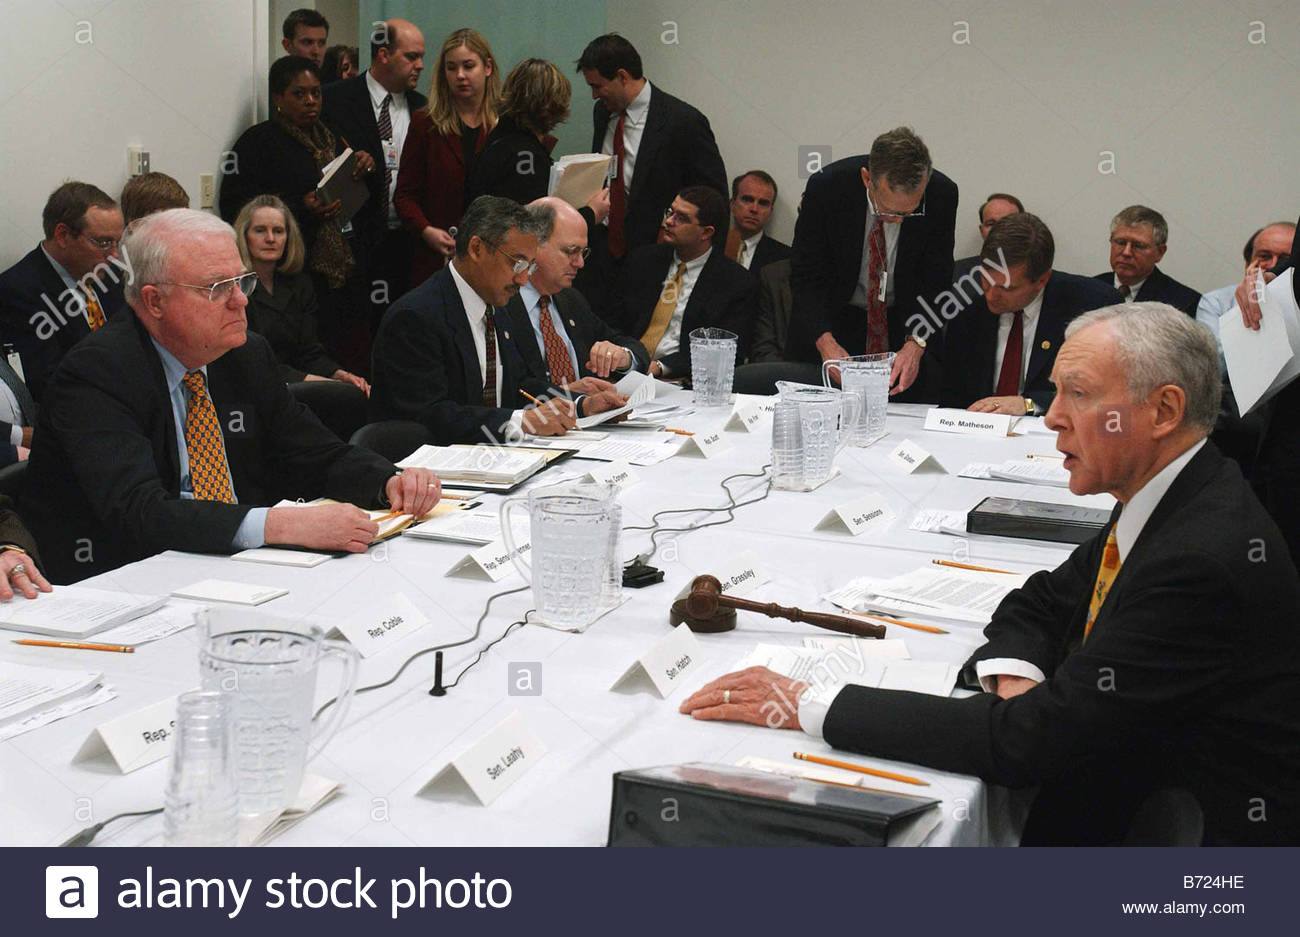 4 8 03 EXPLOITATION OF CHILDREN ACT House Judiciary Chairman F James Sensenbrenner Jr R Wis seated at far left and - Stock Image